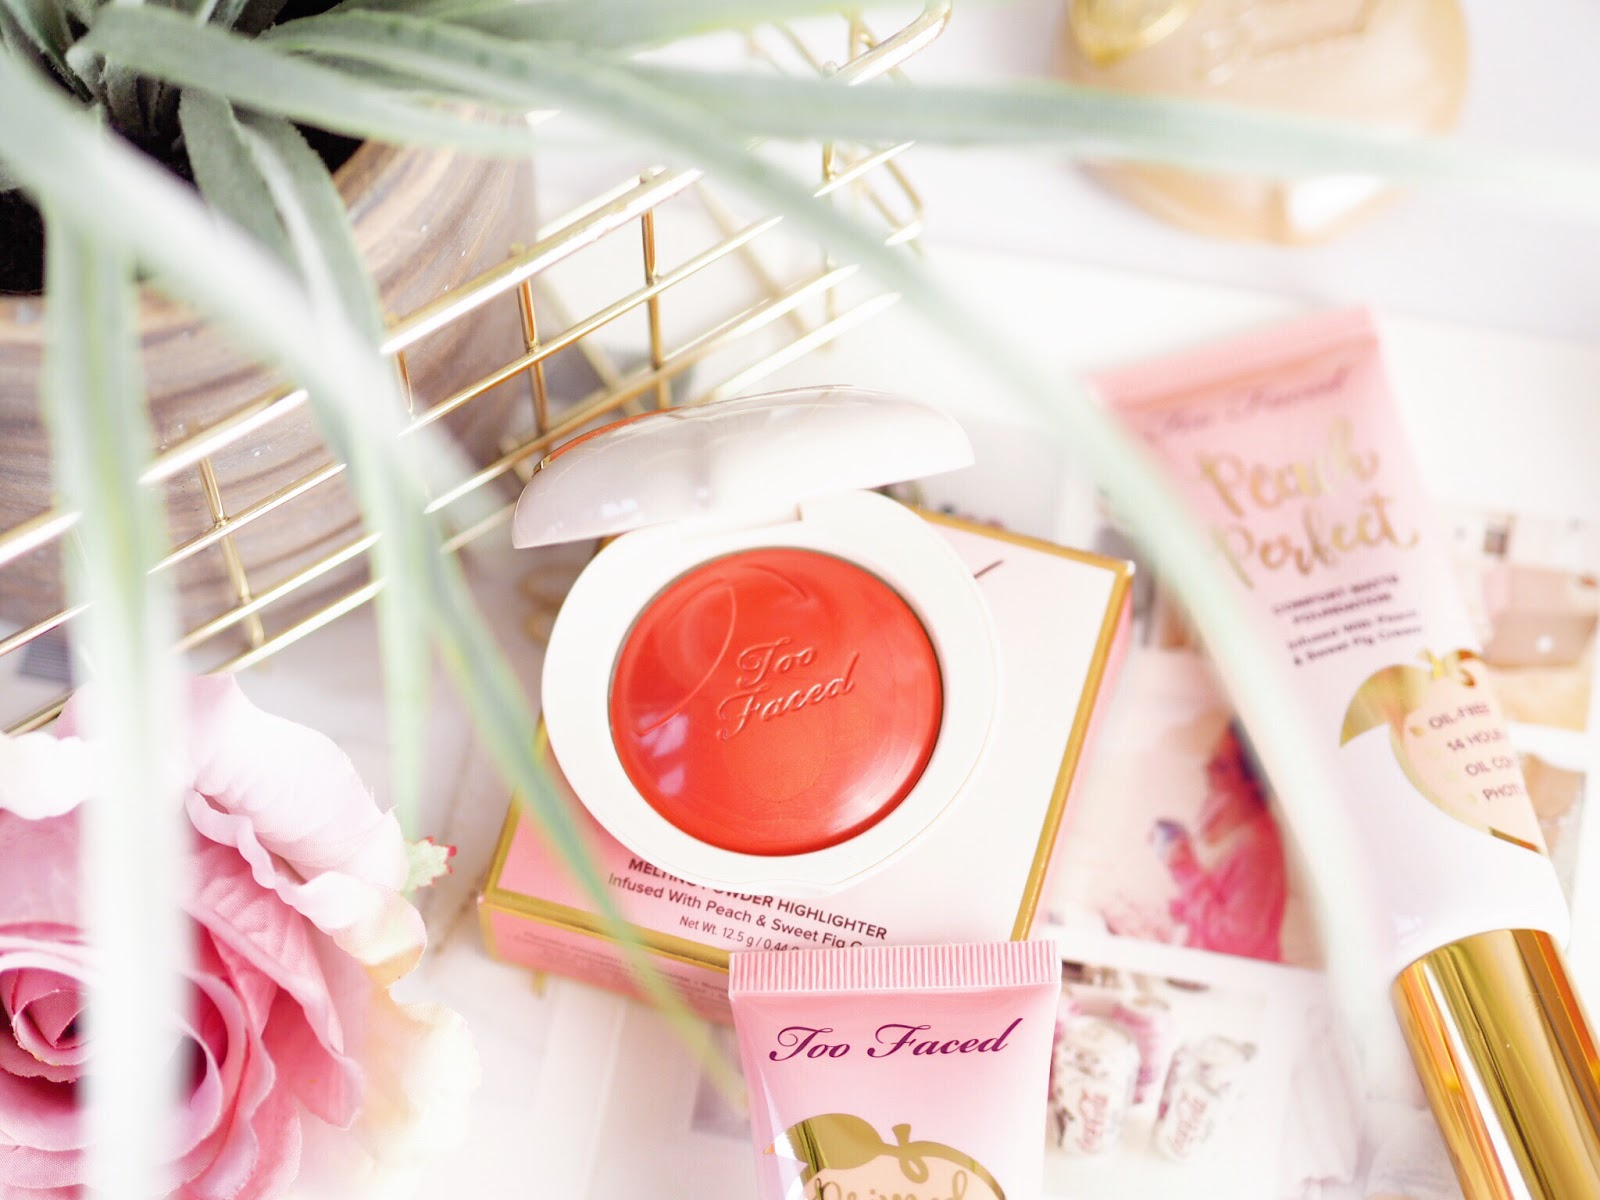 Too Faced Peach My Cheeks Blush, Too Faced, Peach My Cheeks Blush